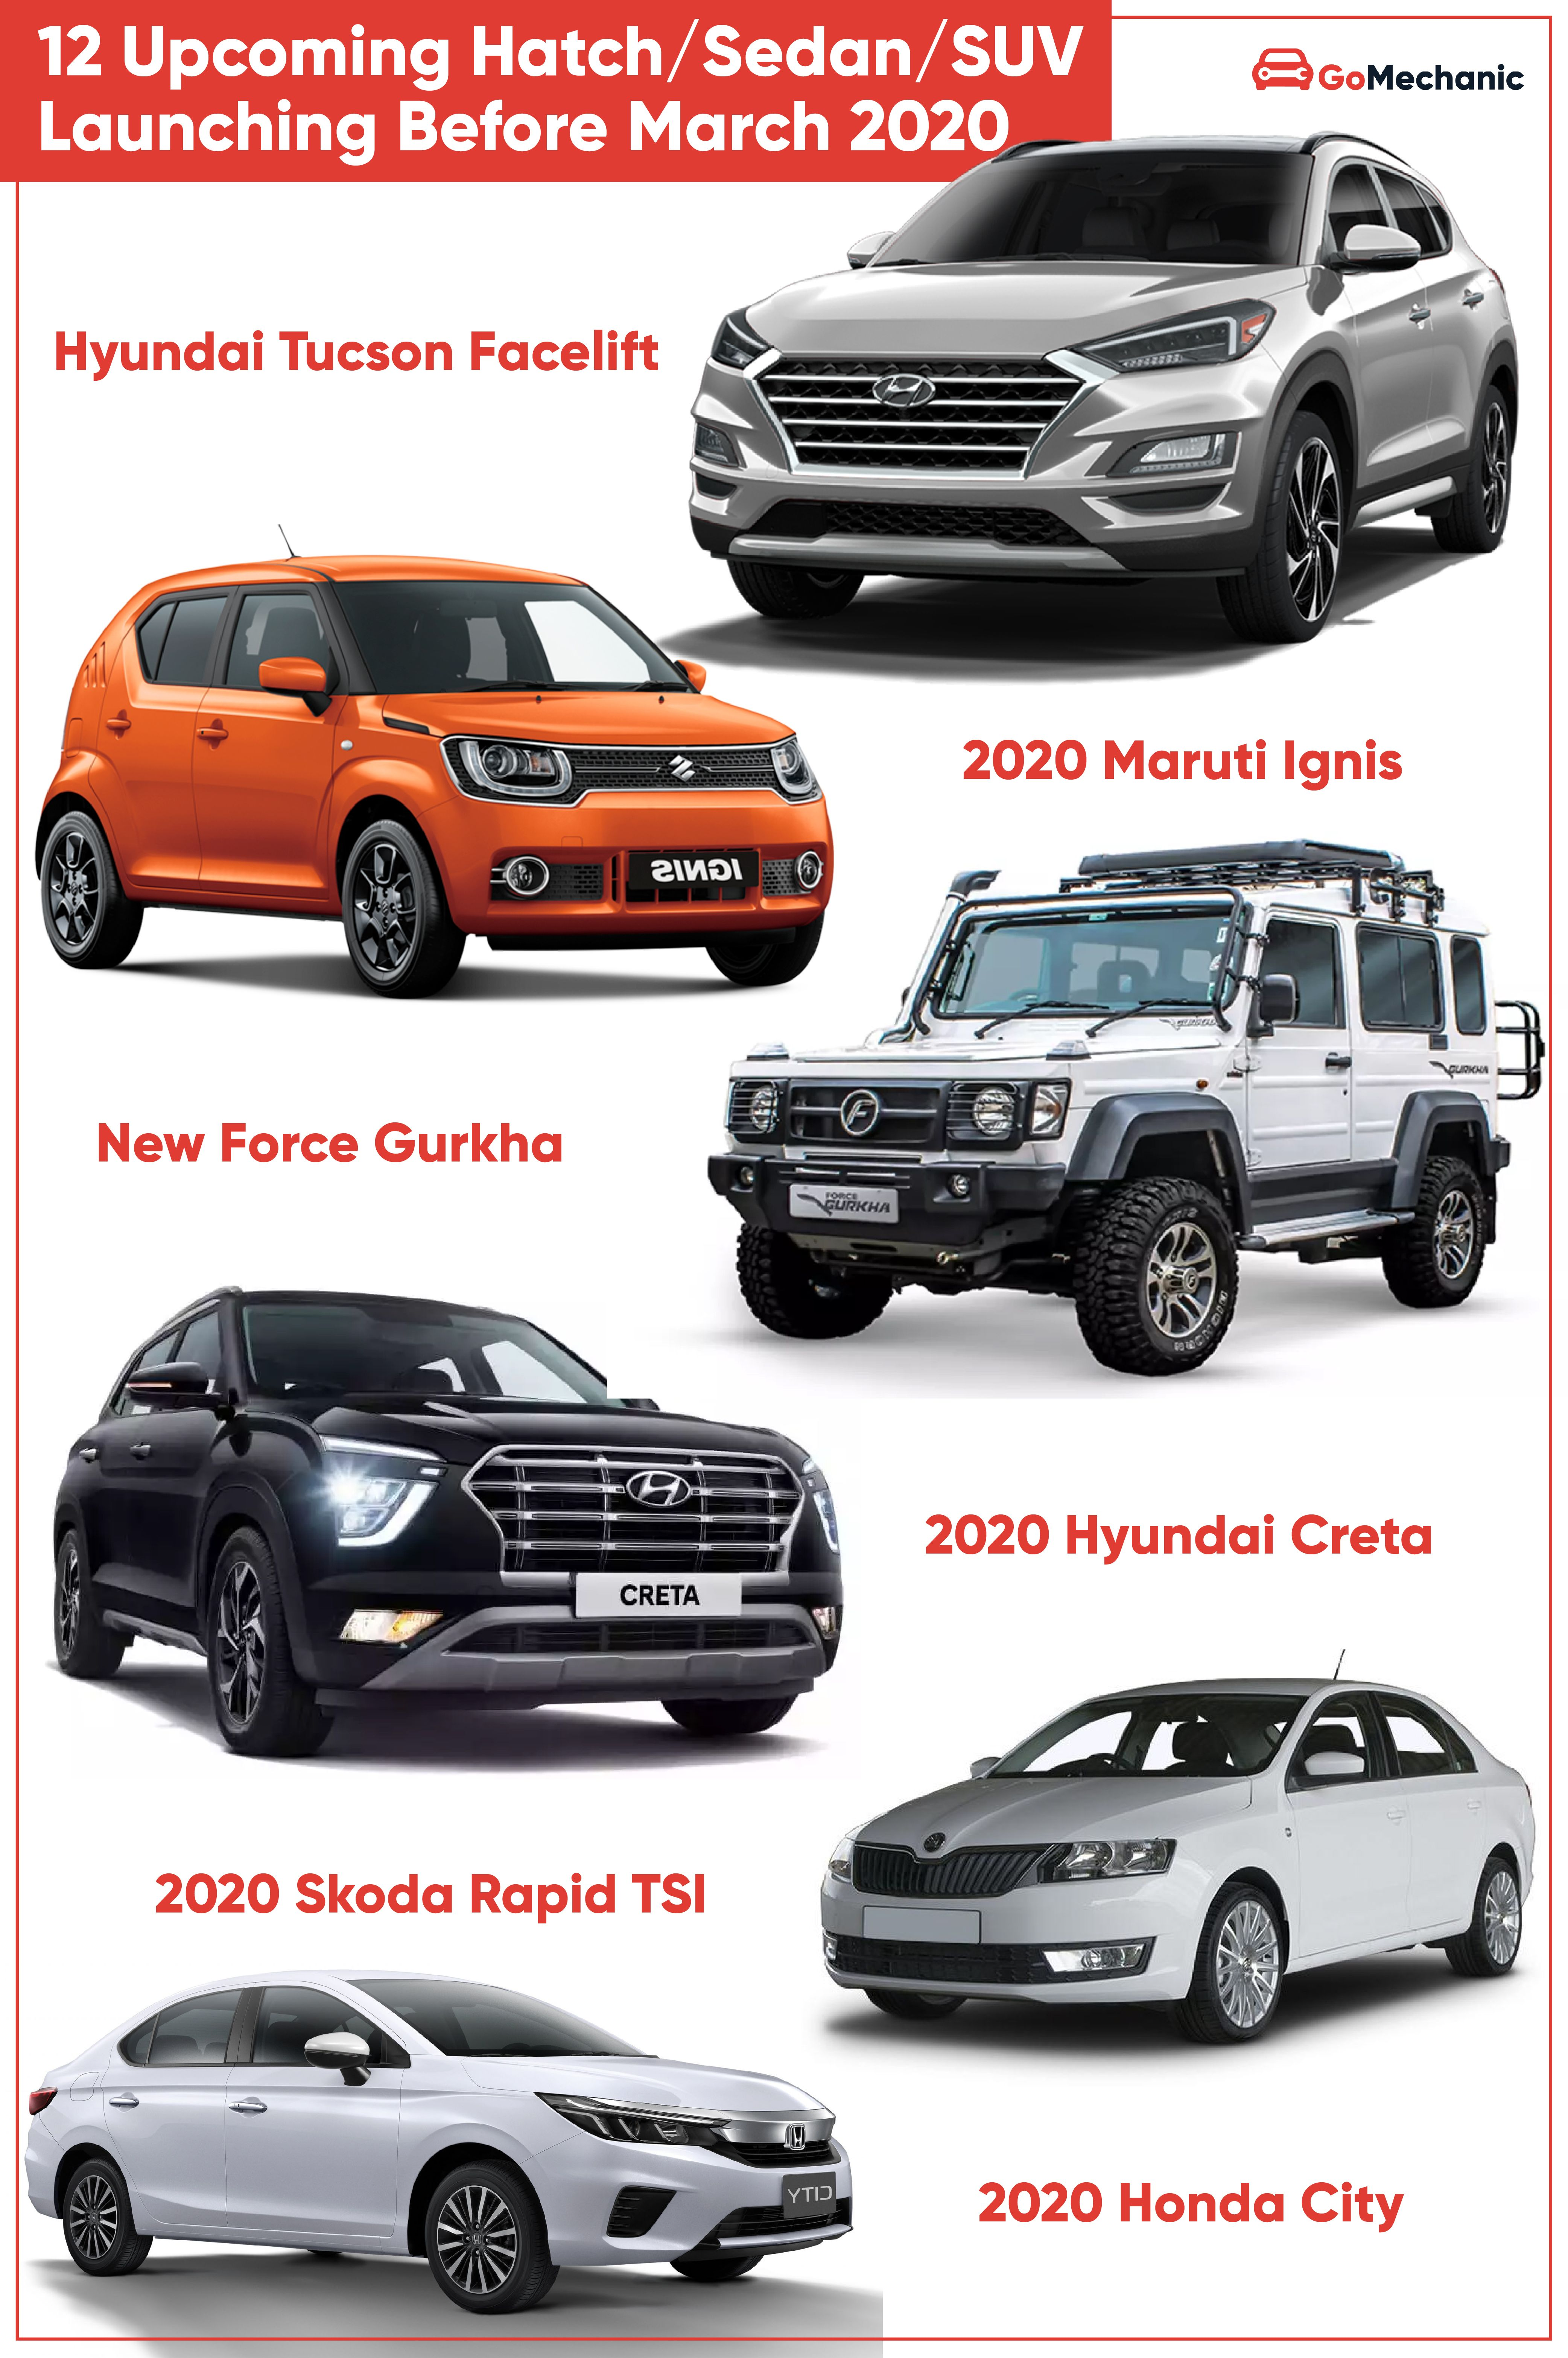 12 Upcoming Cars In India Launching Before March 2020 In 2020